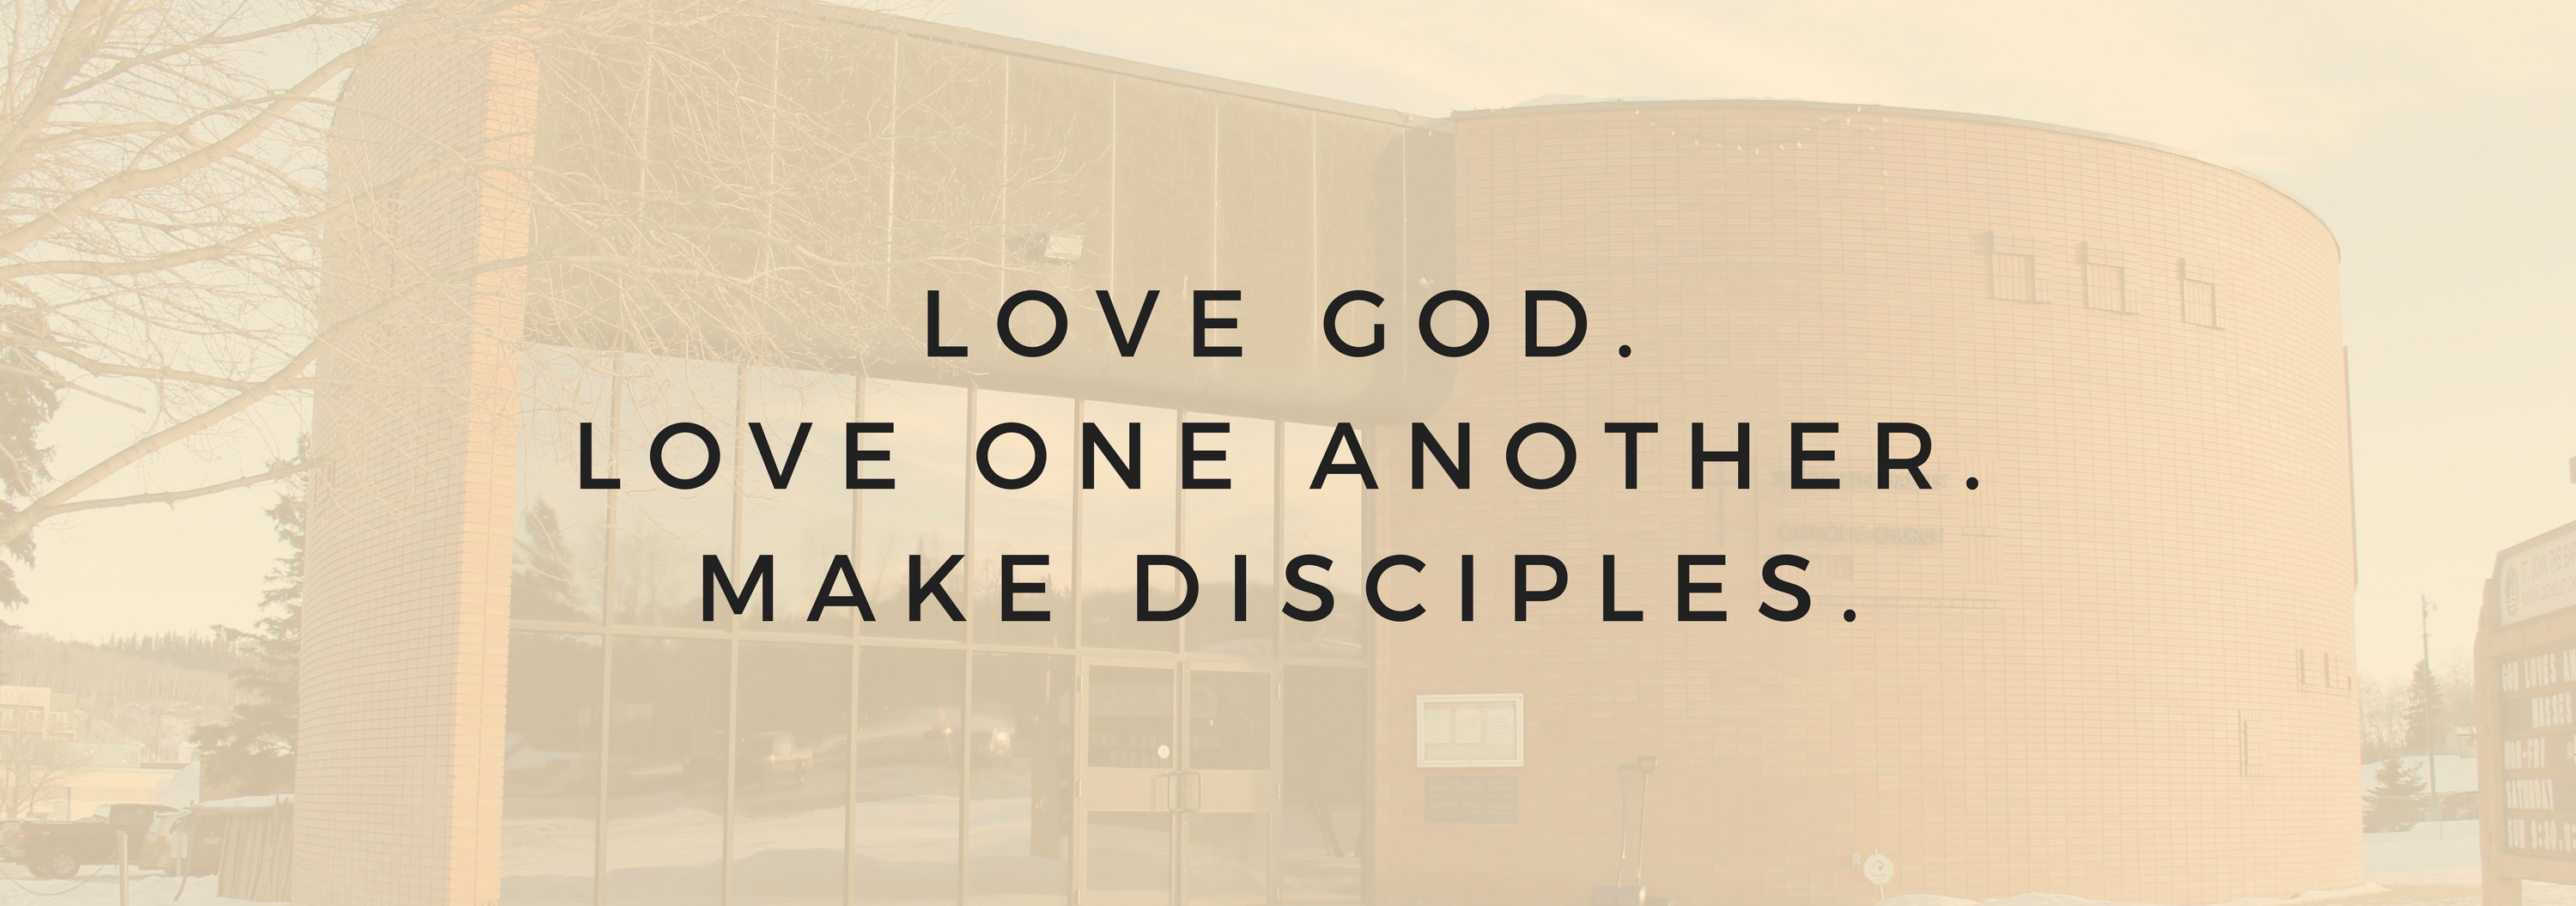 love God.Love One Another.Make Disciples.-2